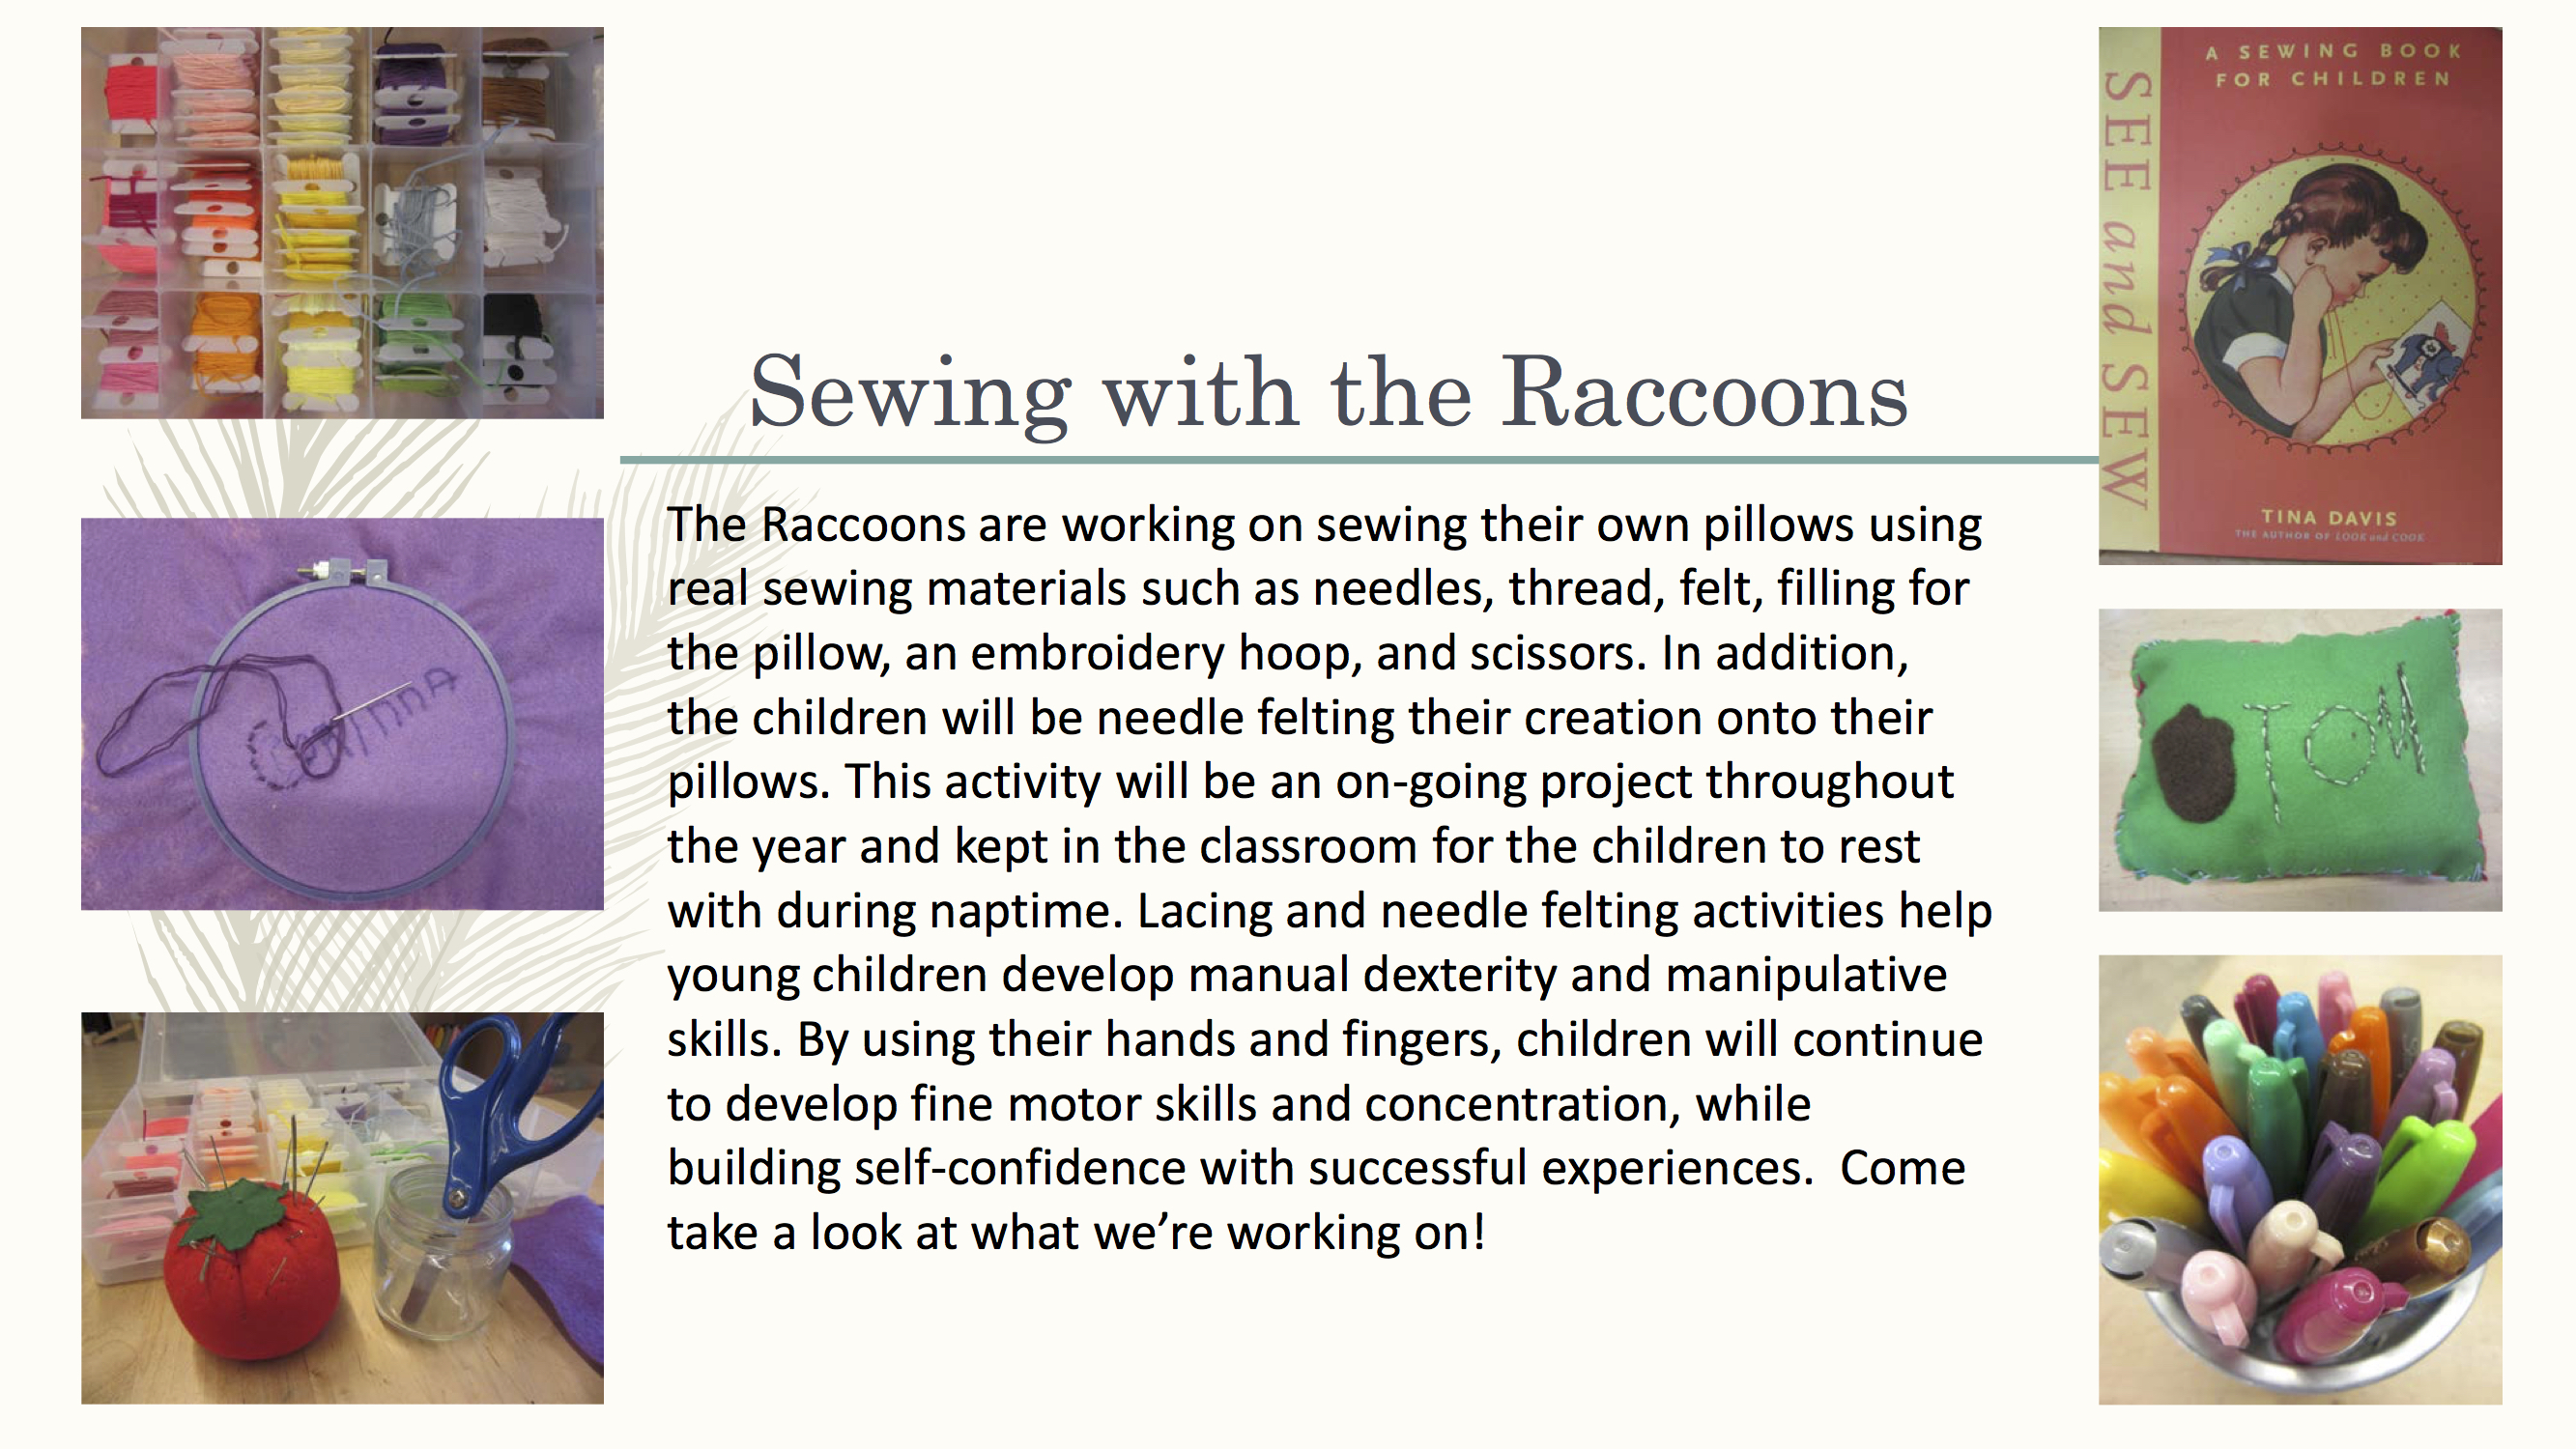 Sewing with the Raccoons